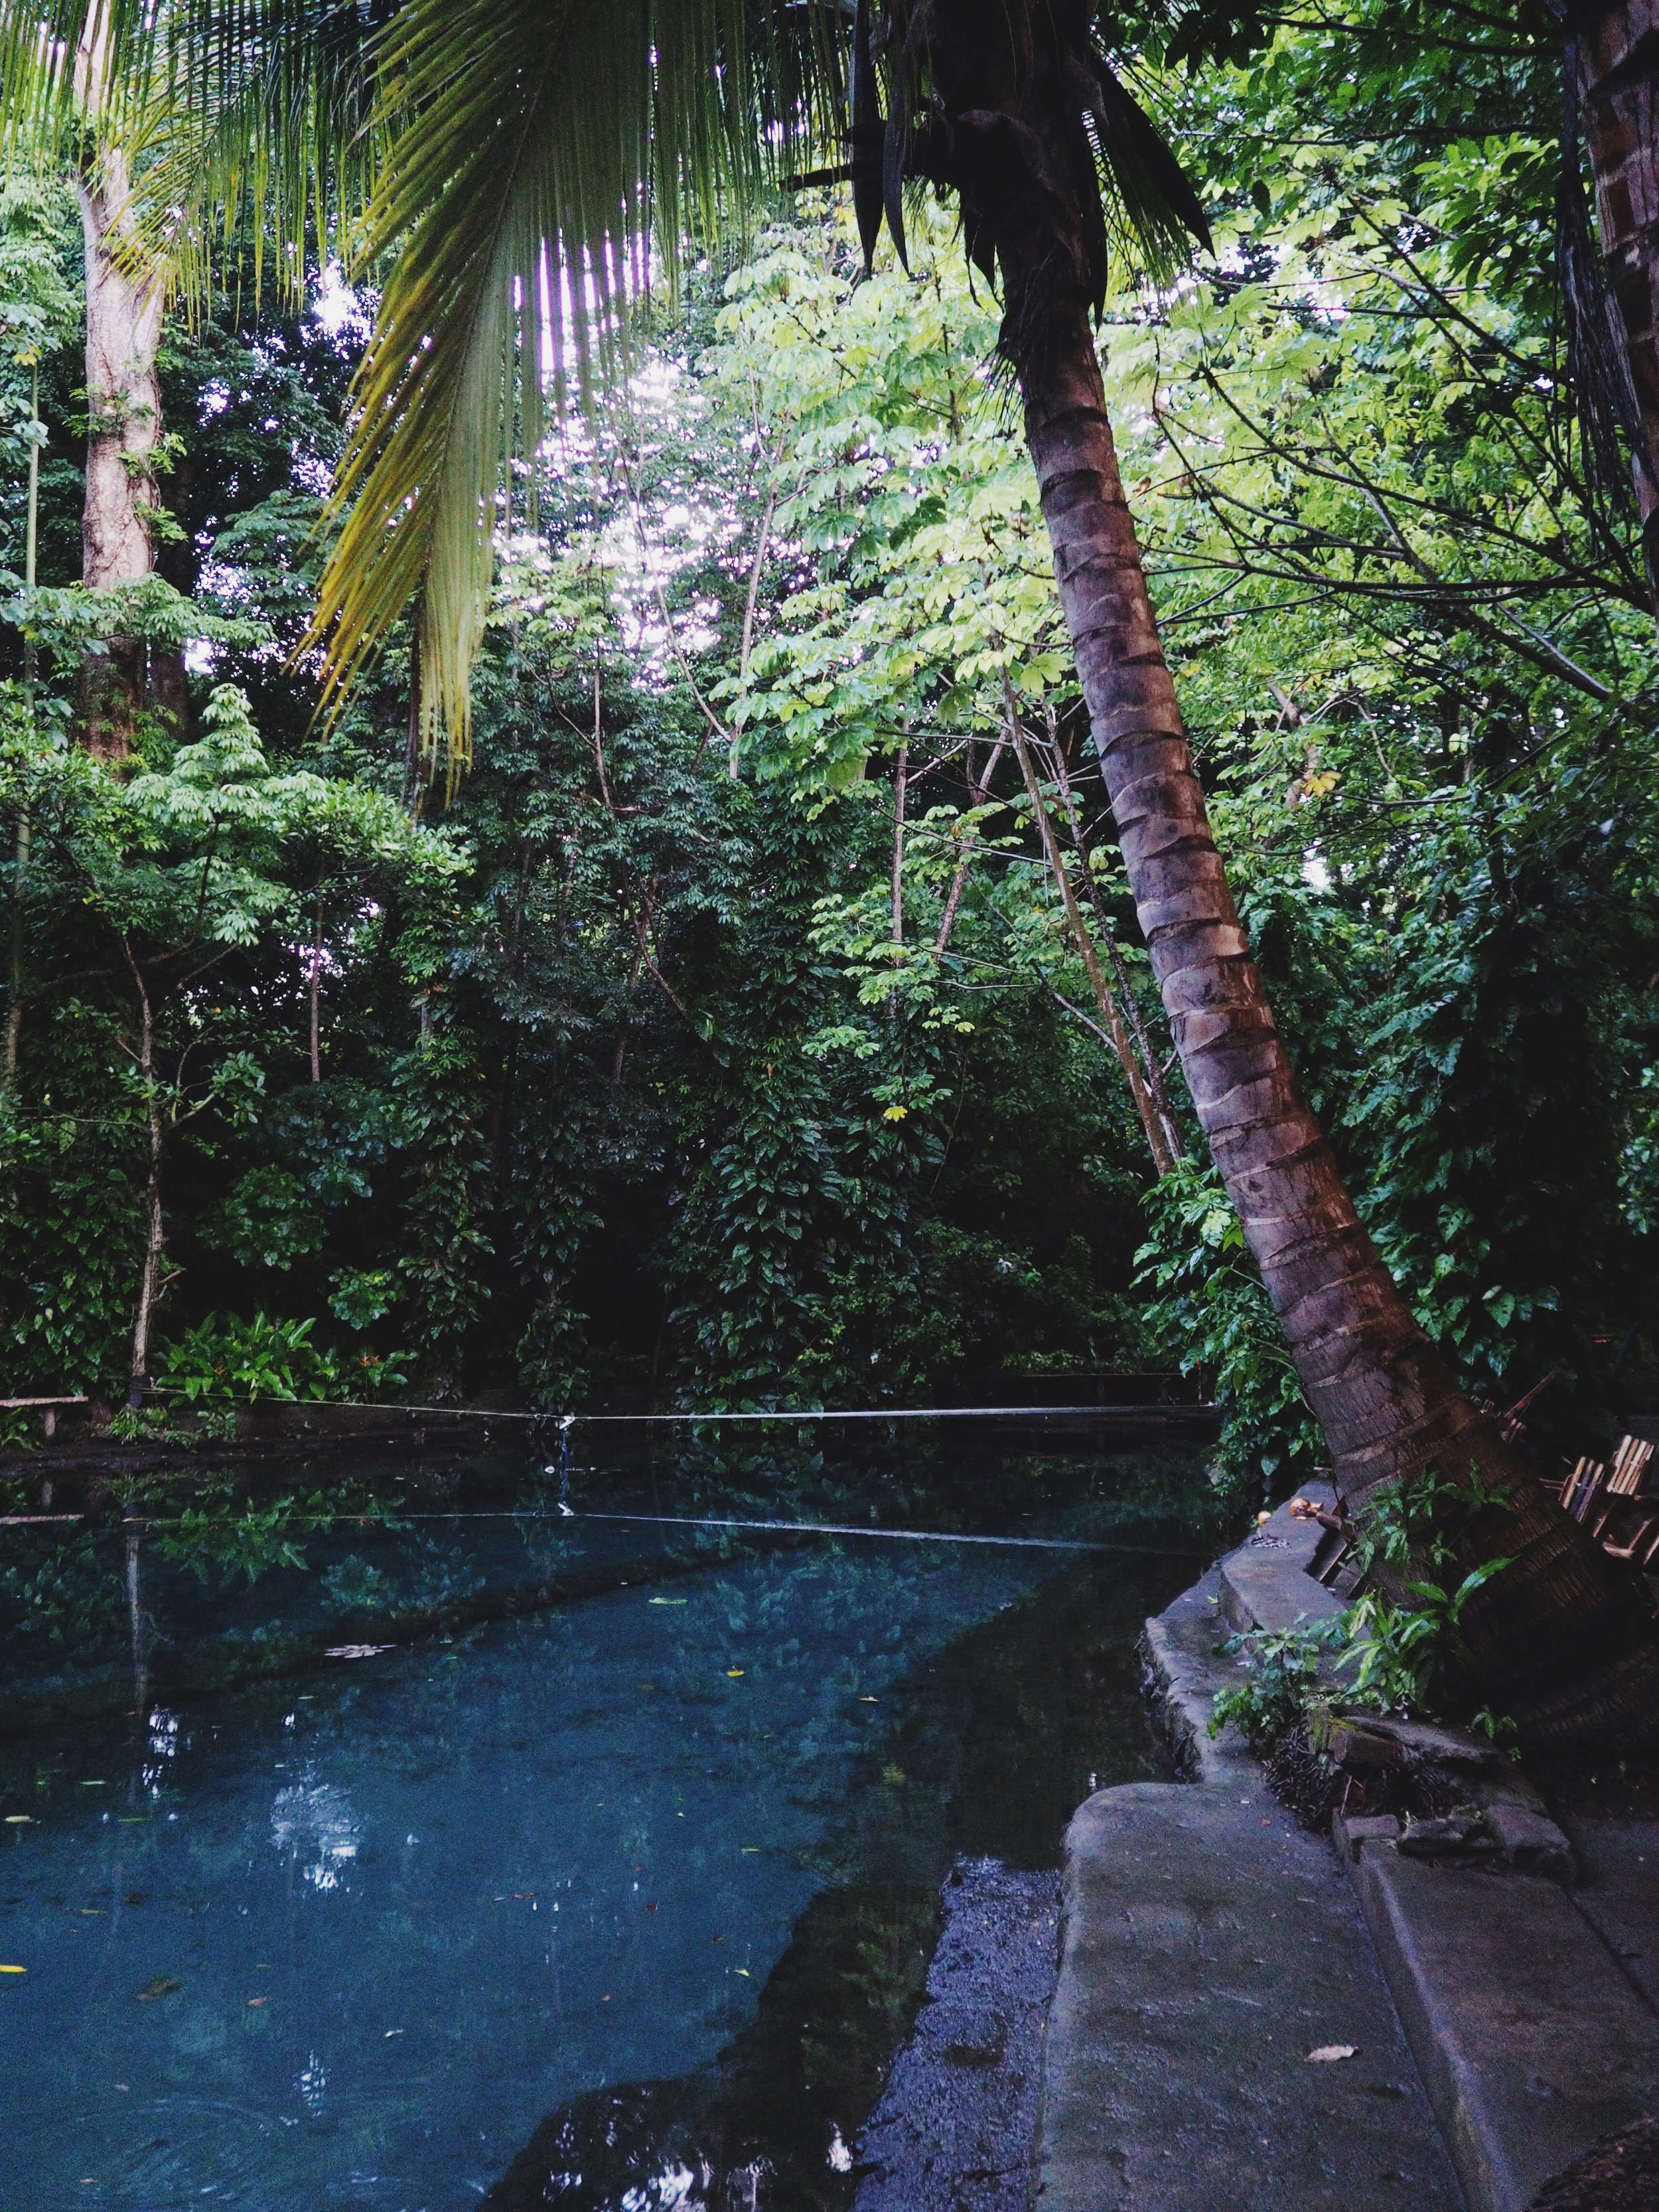 We finally reached Ojo de Agua after a solid dirt road stretch from the ferry. Ojo de Agua is a beautiful natural swimming hole beneath a green canopy of vegetation with cool, refreshing waters.